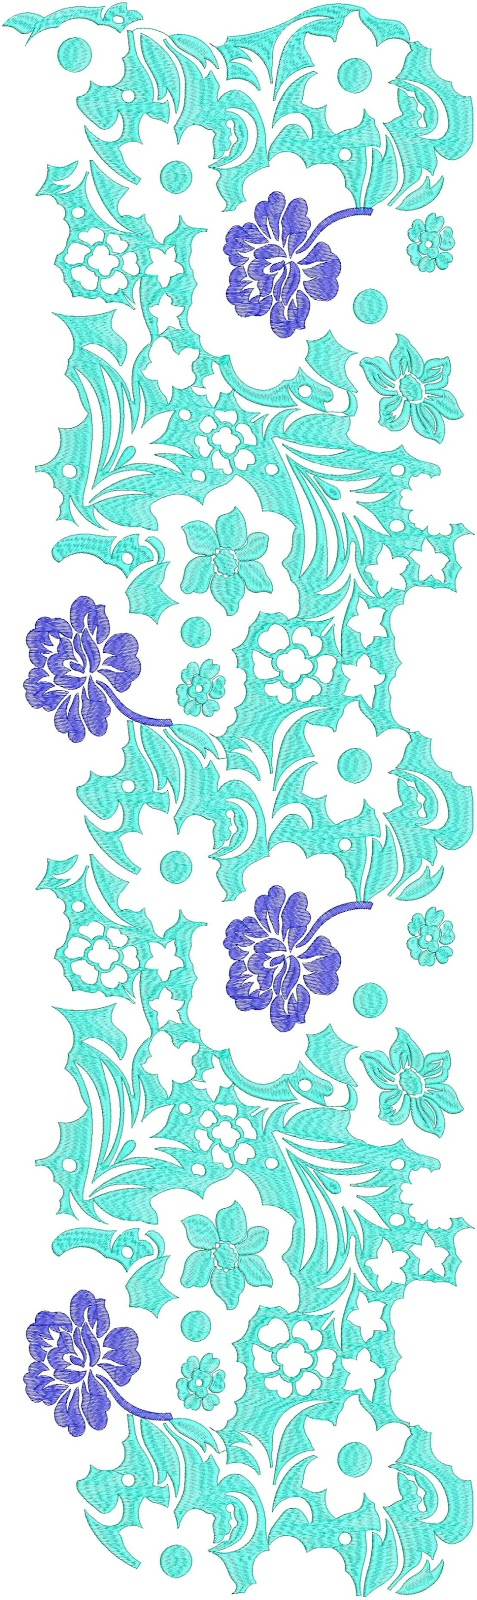 Natural Design Pattern The Pattern is in Natural